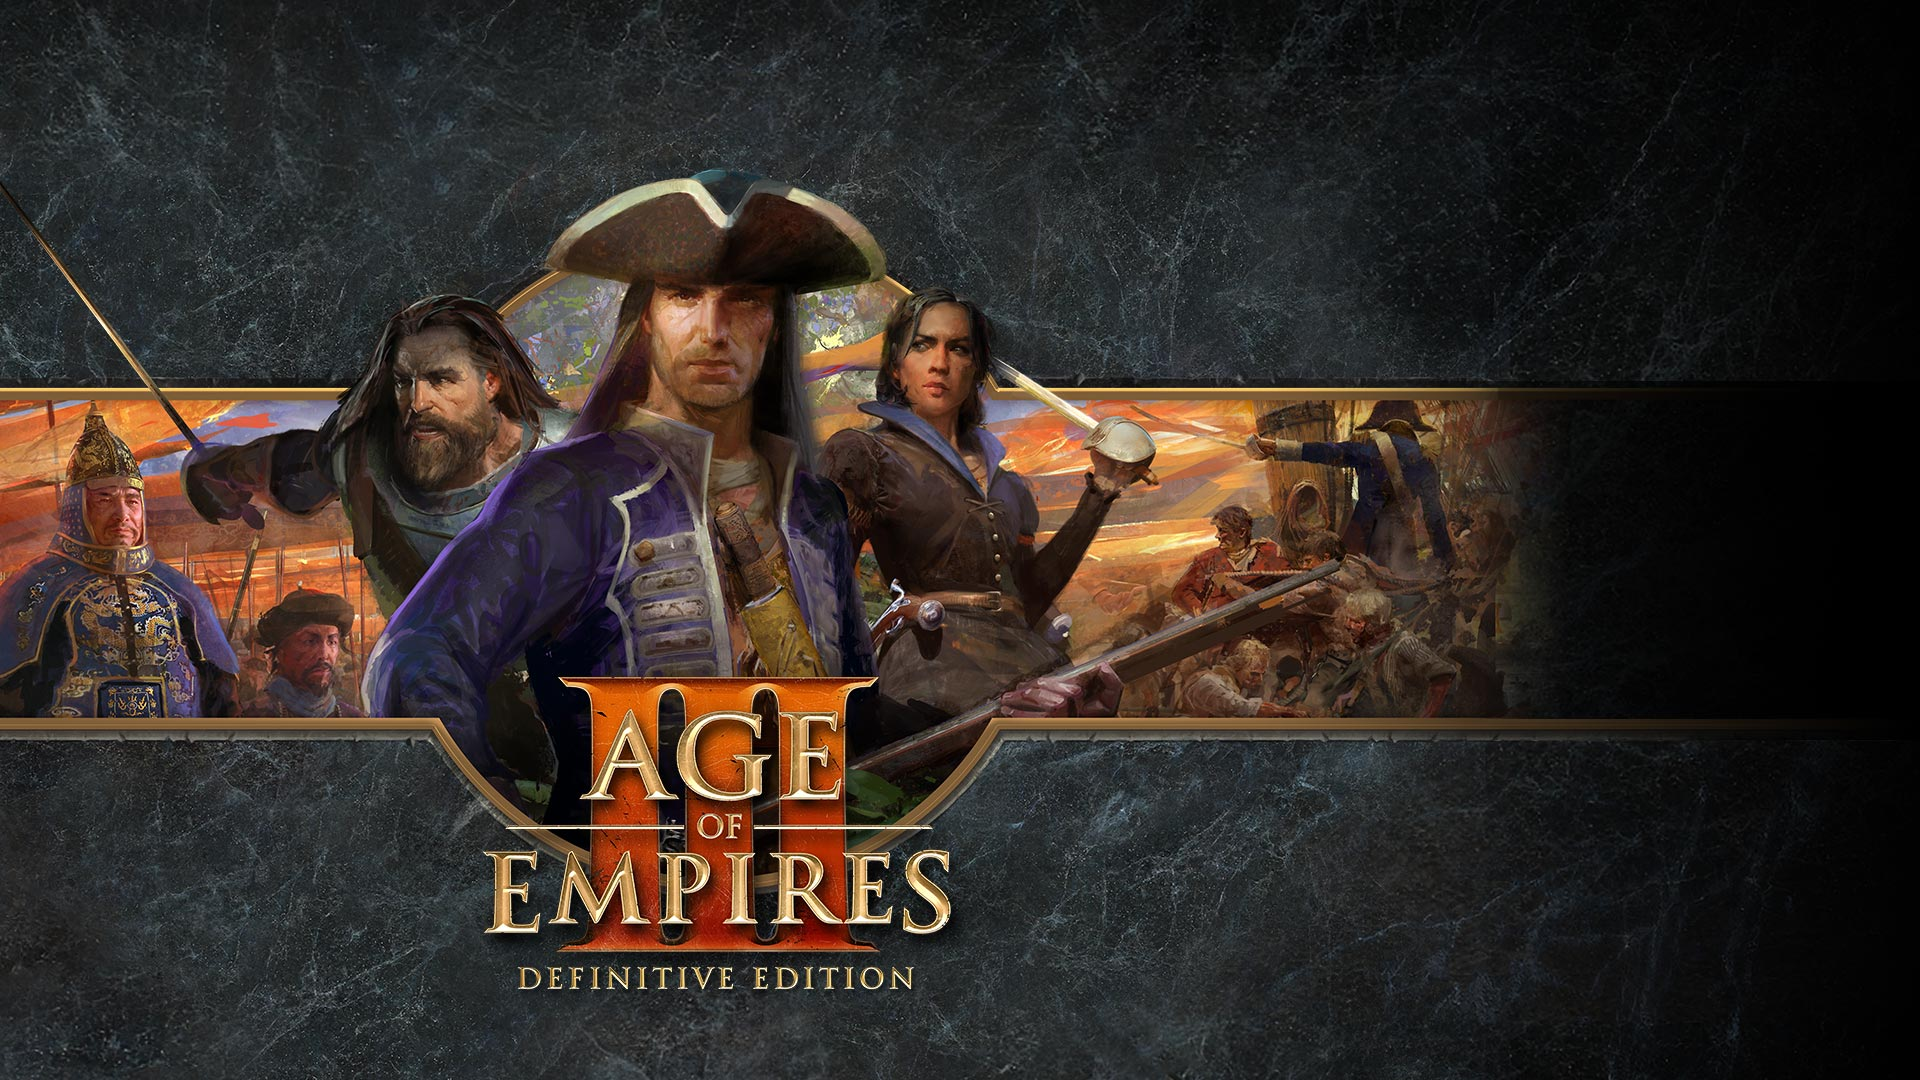 Age of Empires III: Definitive Edition, personagens posando